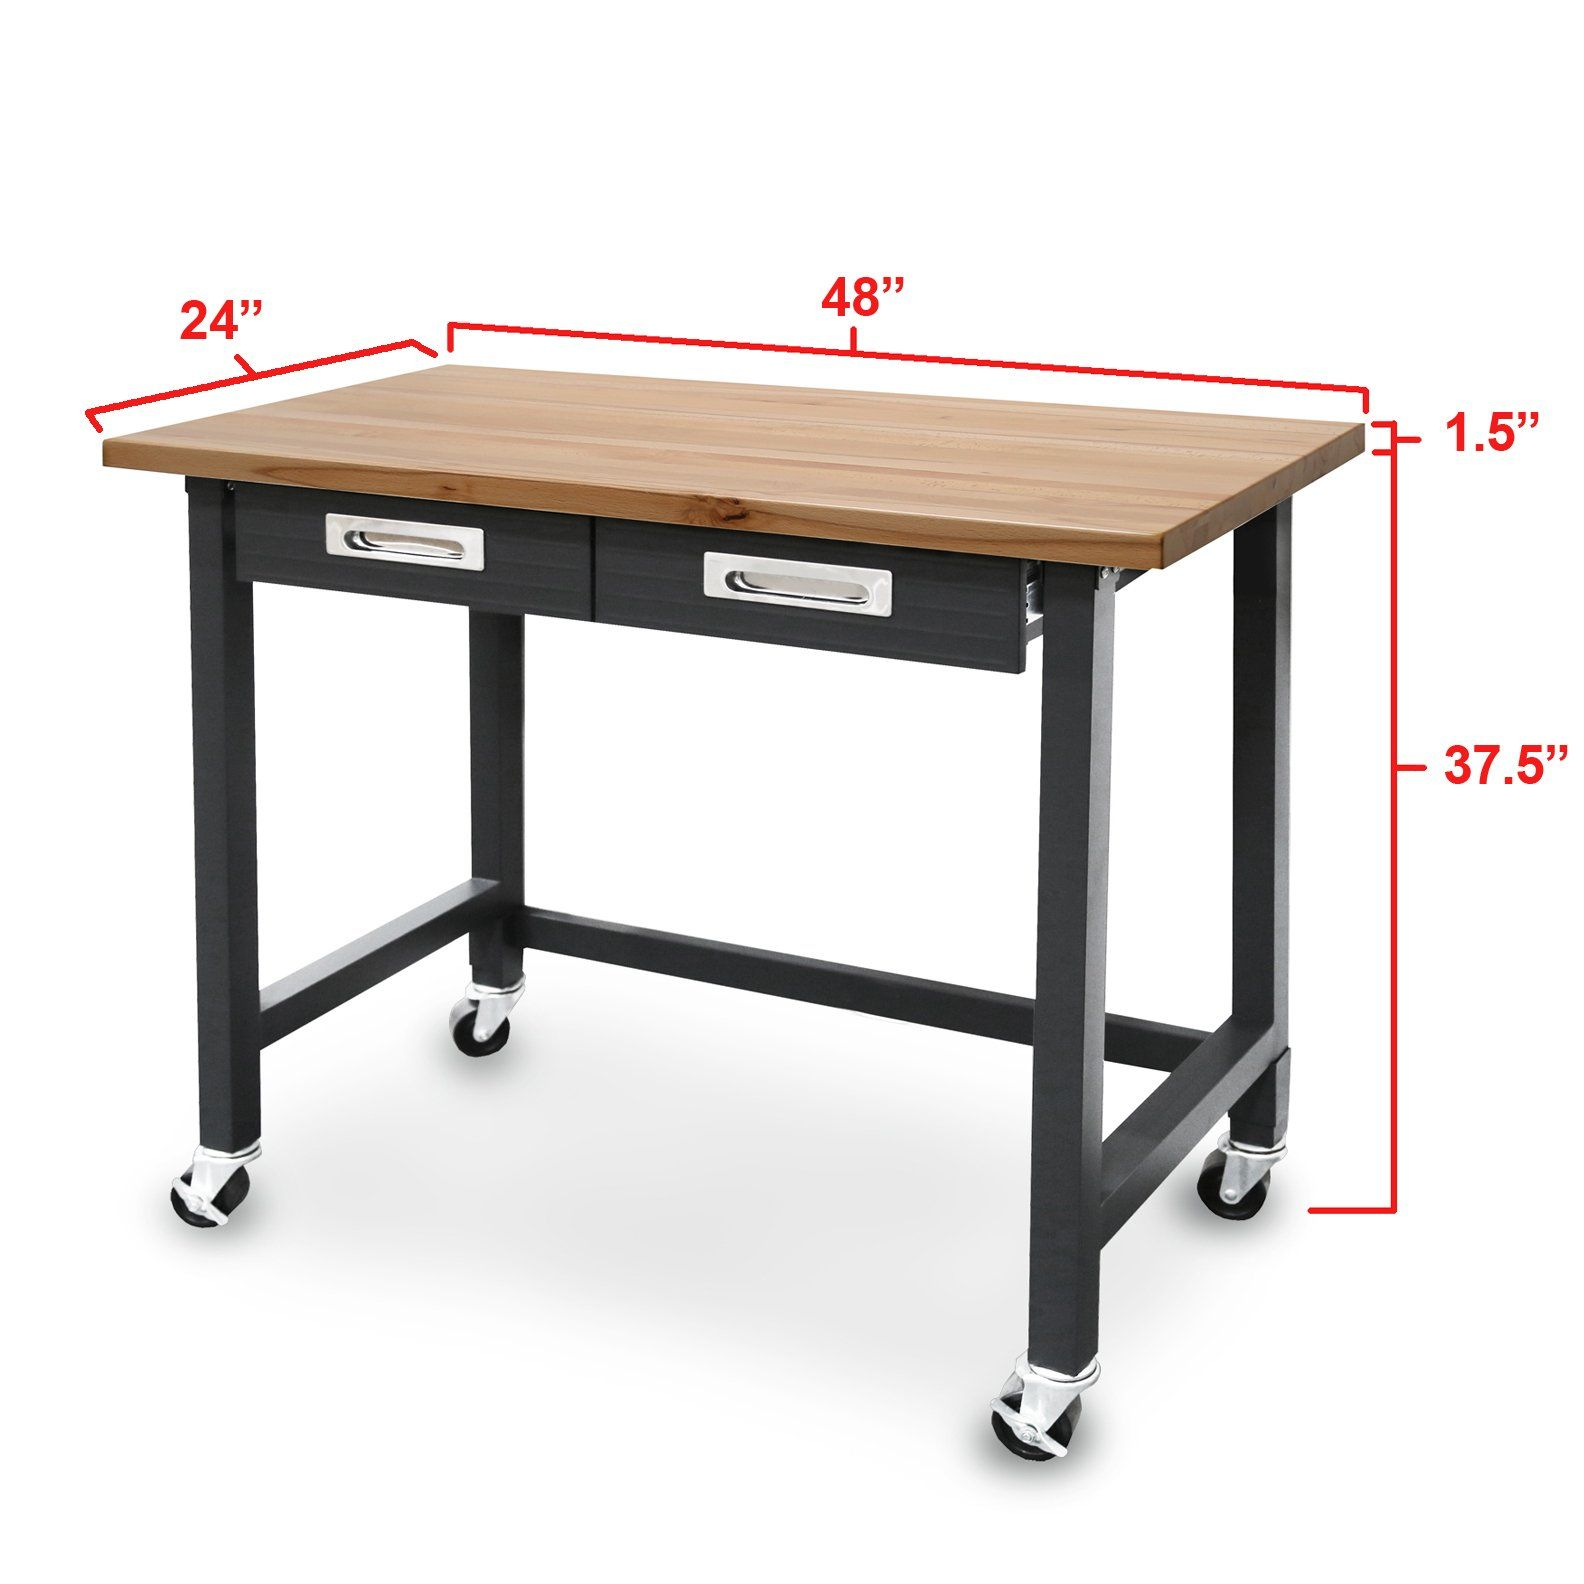 Robot Check Wood Top Workbench Woodworking Plans Toys Workbench